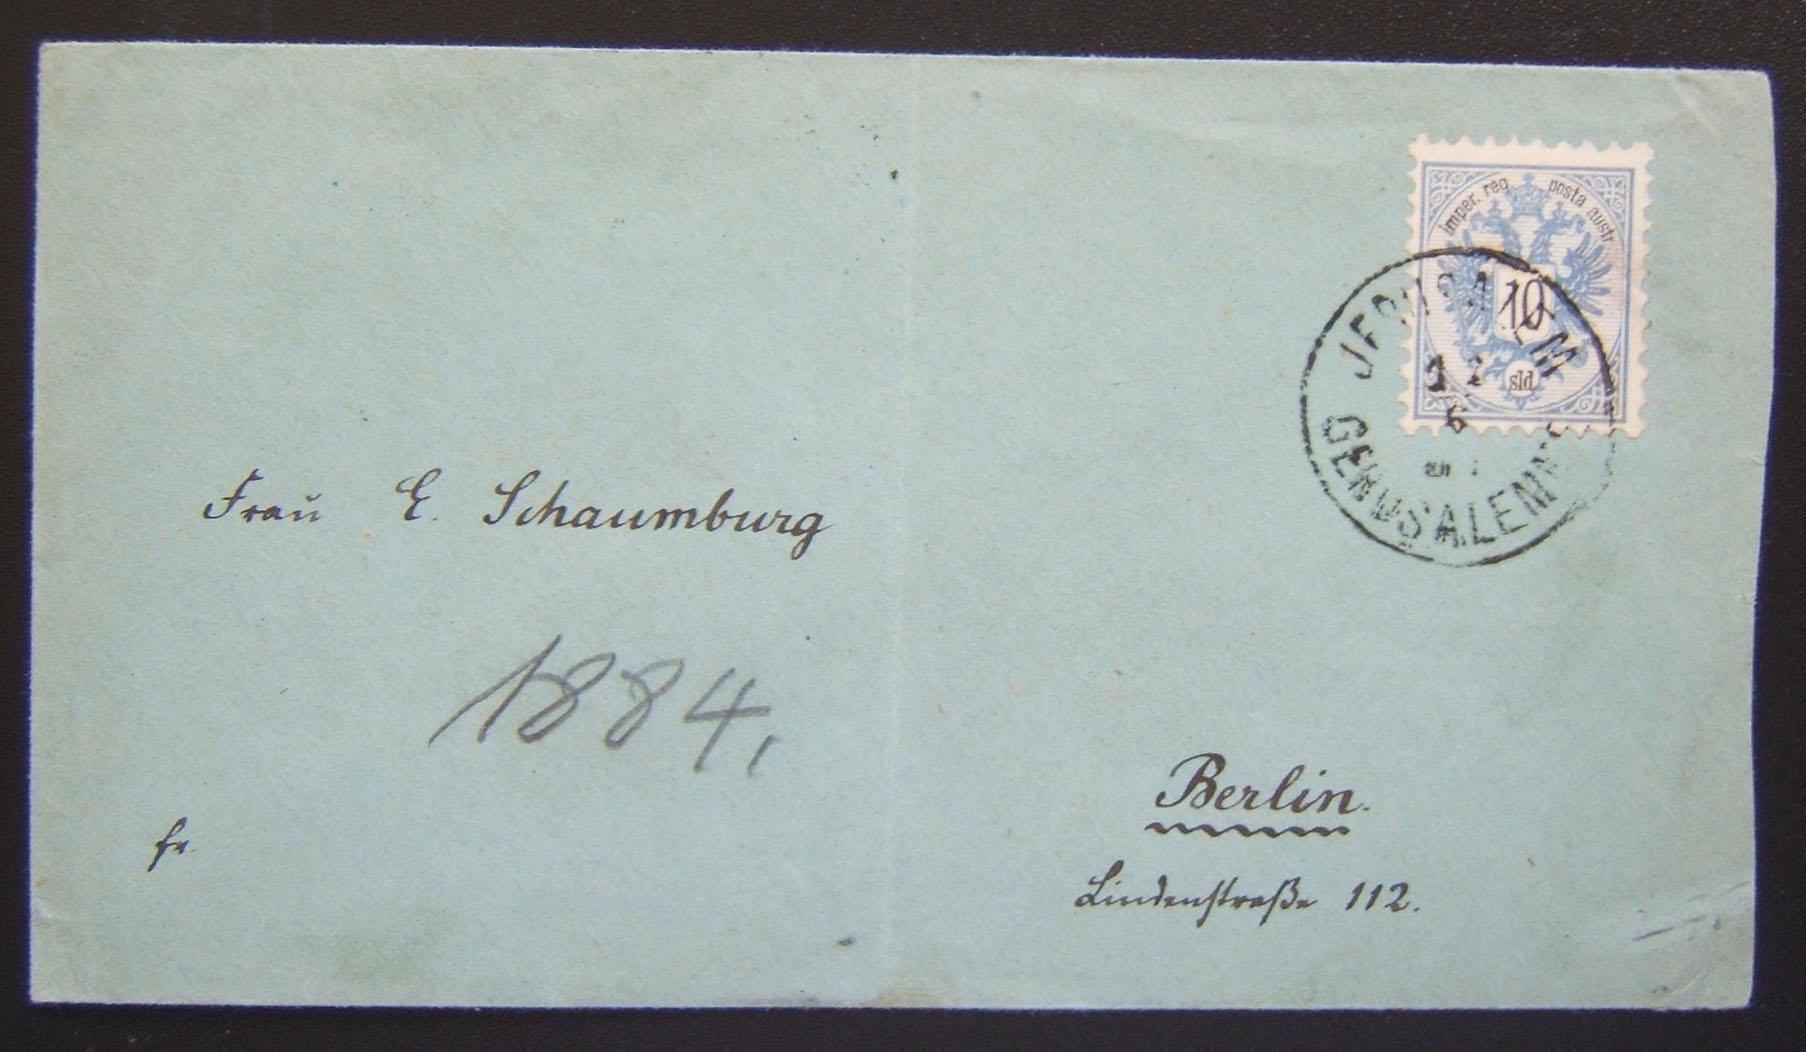 cvr ex Jerusalem to Berlin via Austrian PO, franked 10 Soldi w/arr pmk 24 Jun 1884